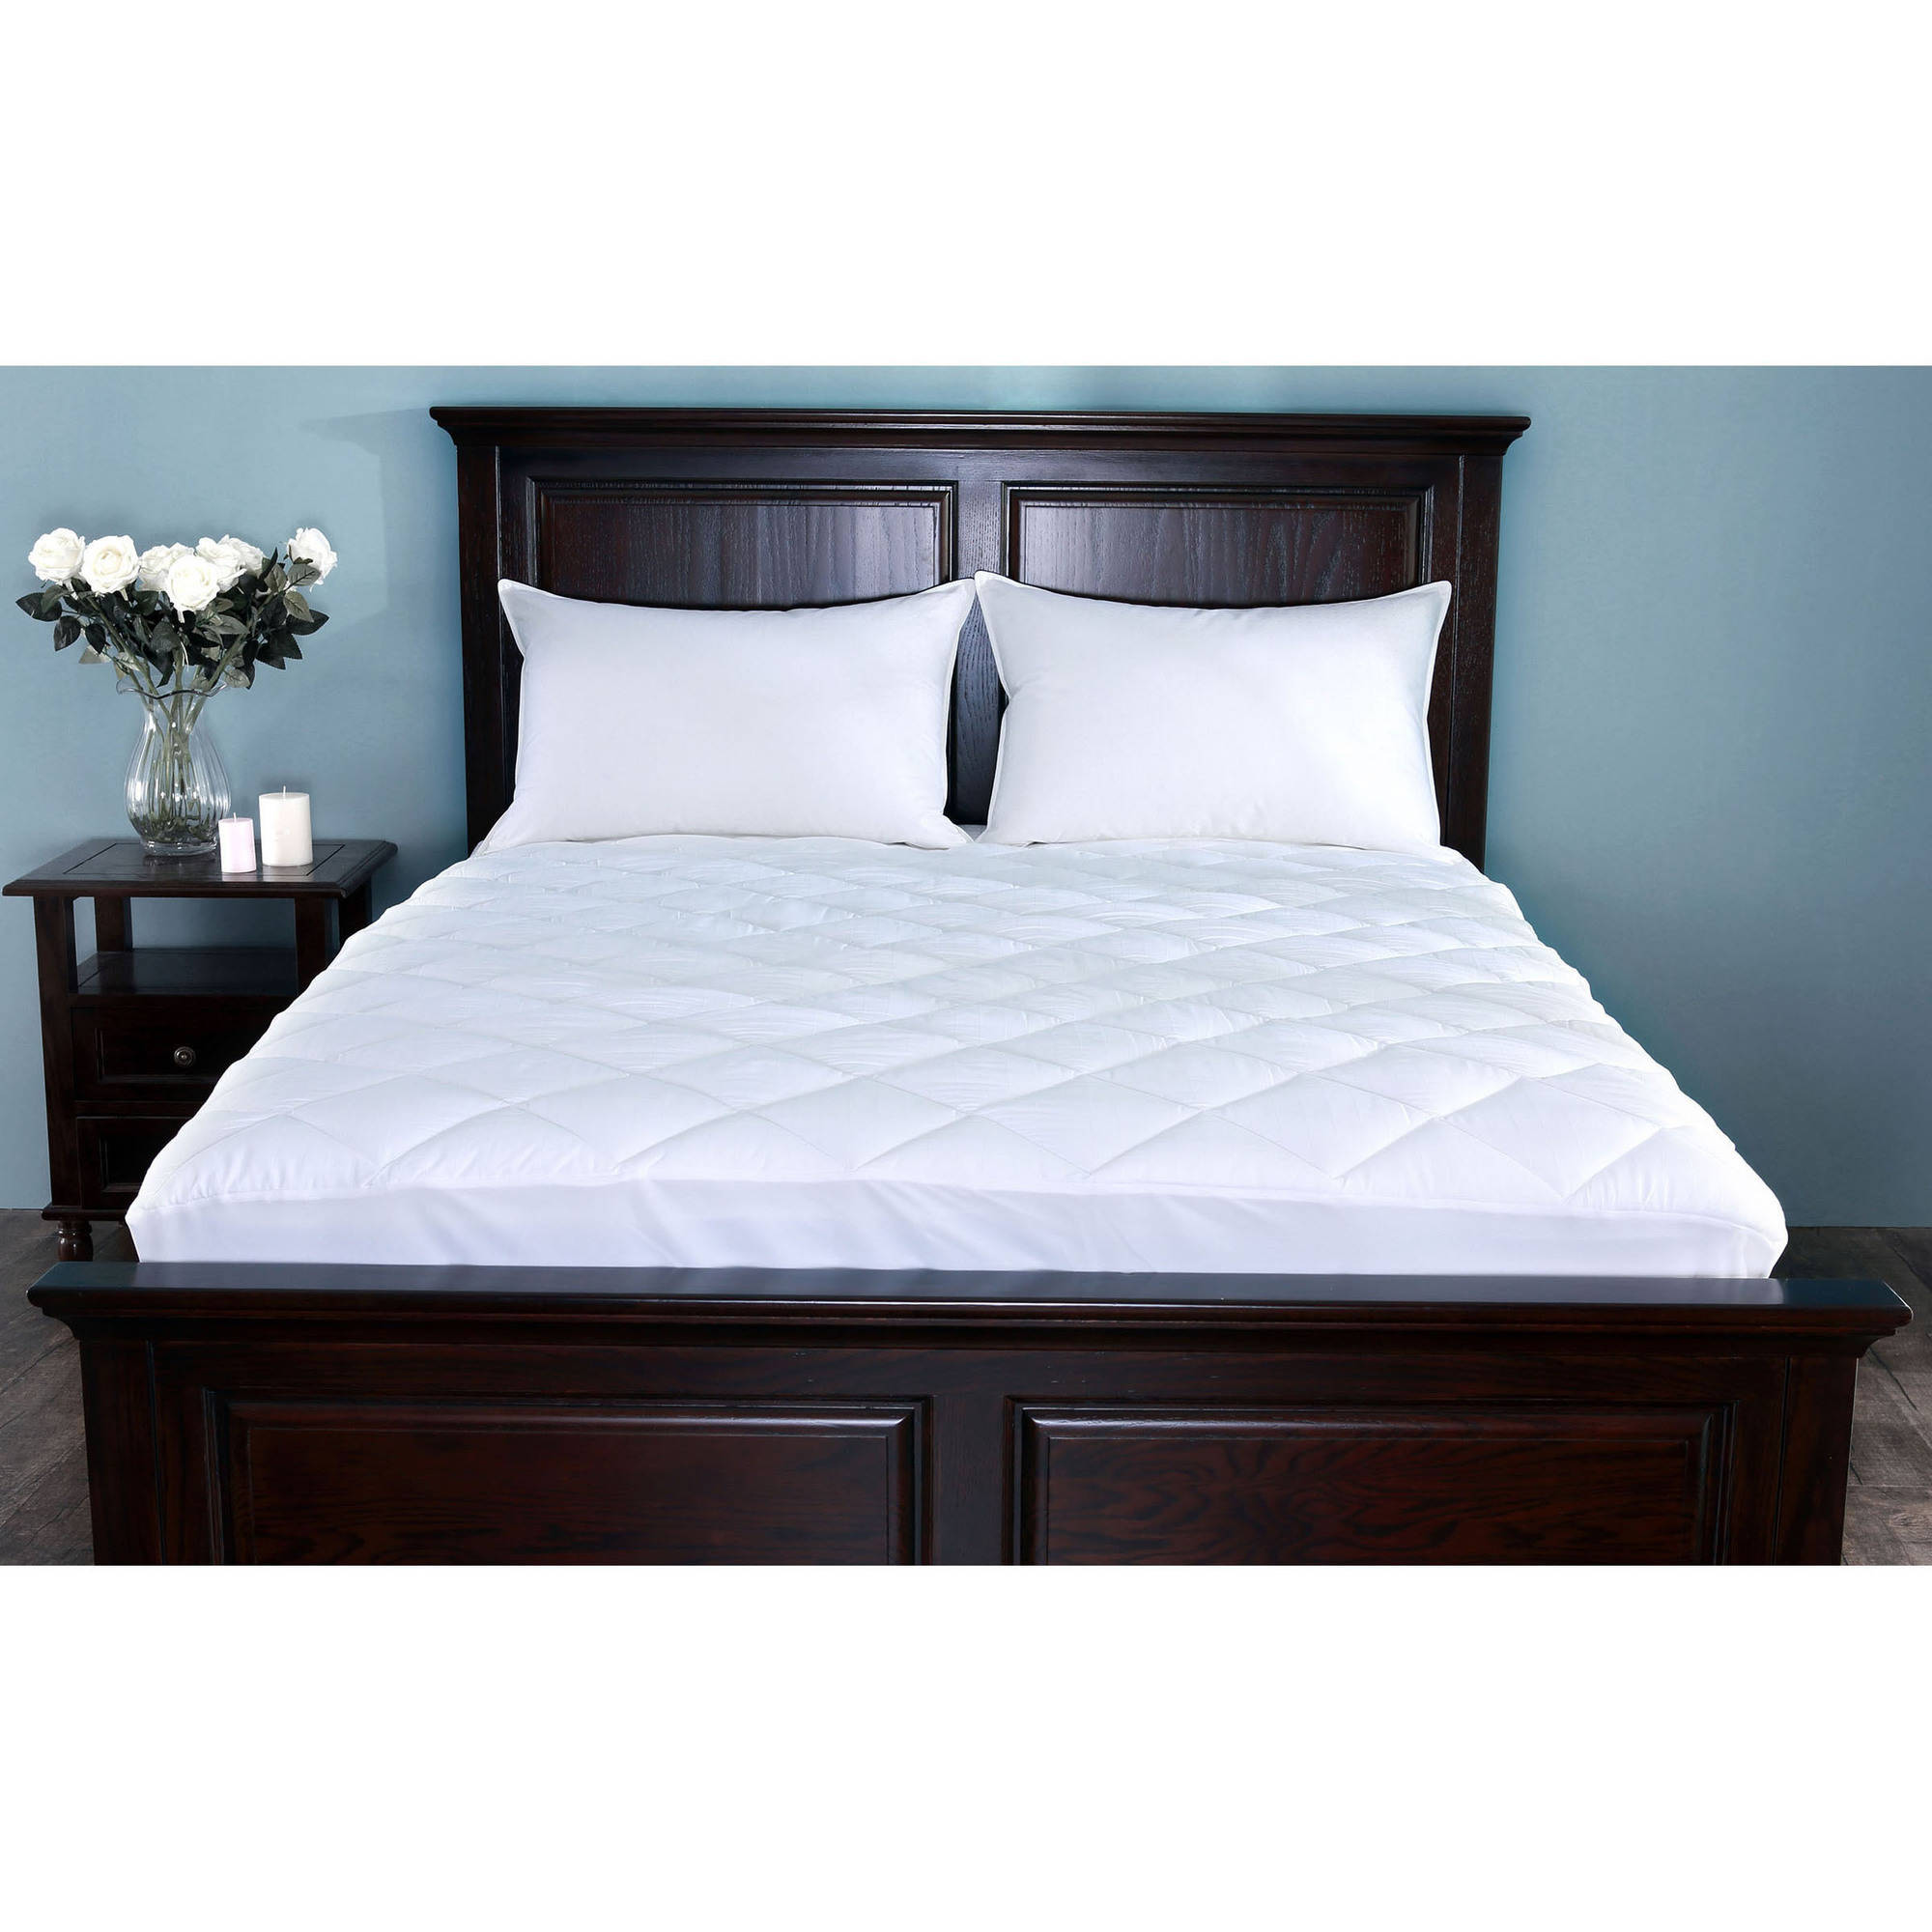 St. James Home Waterproof Stain Resistant Mattress Pad